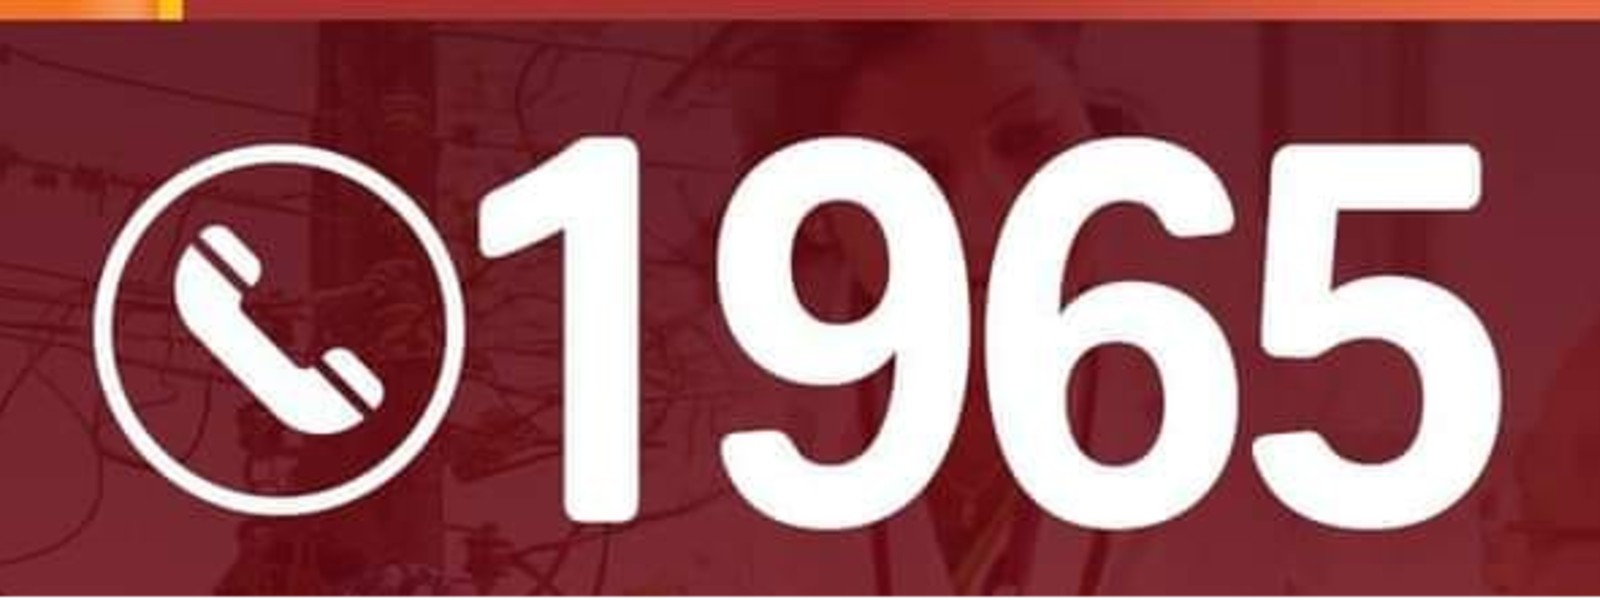 '1965'  Hotline for inquiries on essential services